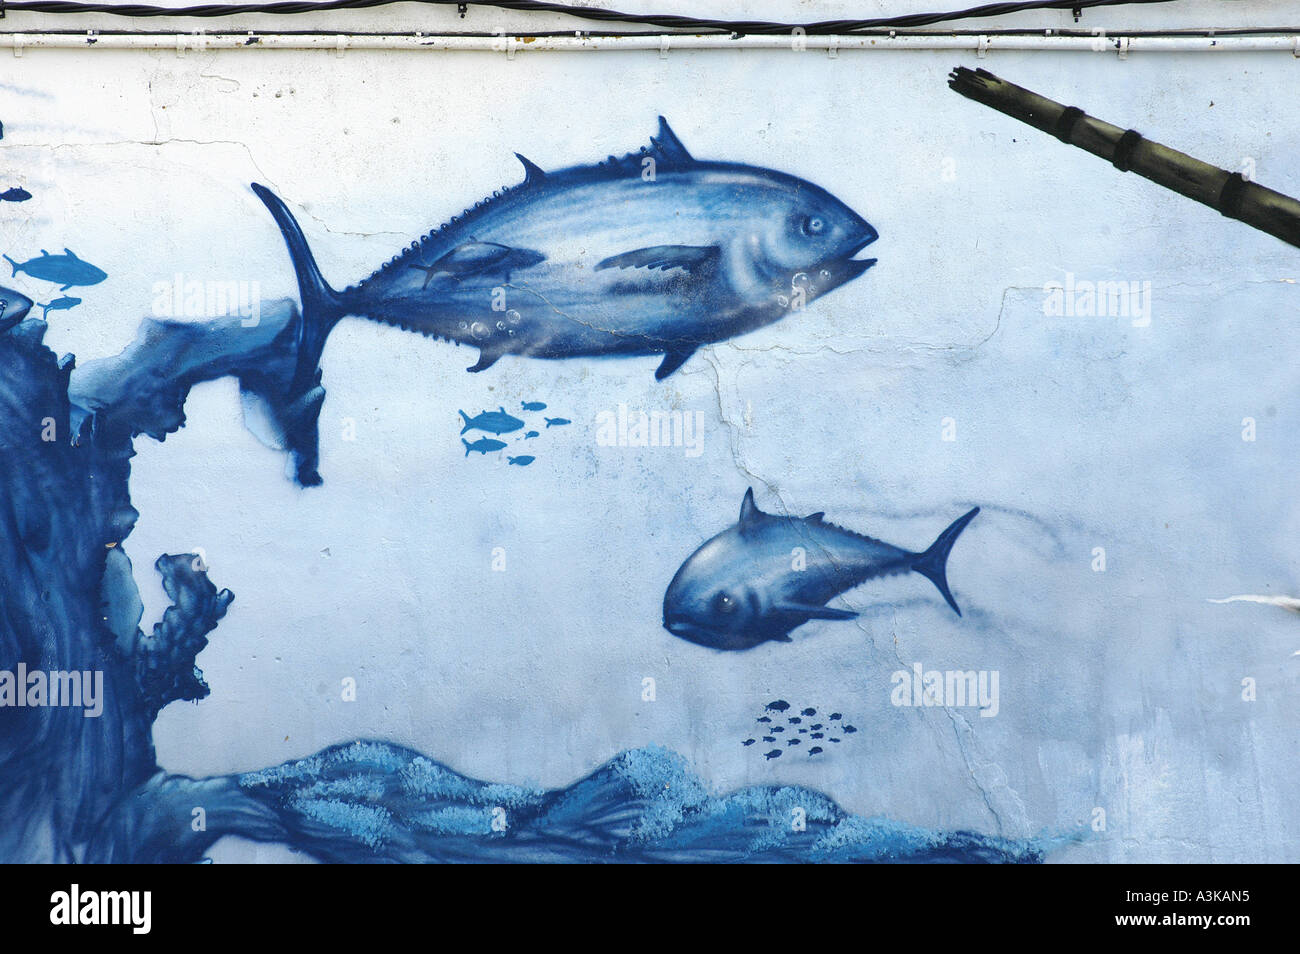 Painting Wall Method - Stock photo tuna wall painting mural barbate where it takes place the almadraba a traditional method of fishing for tuna when their migratio